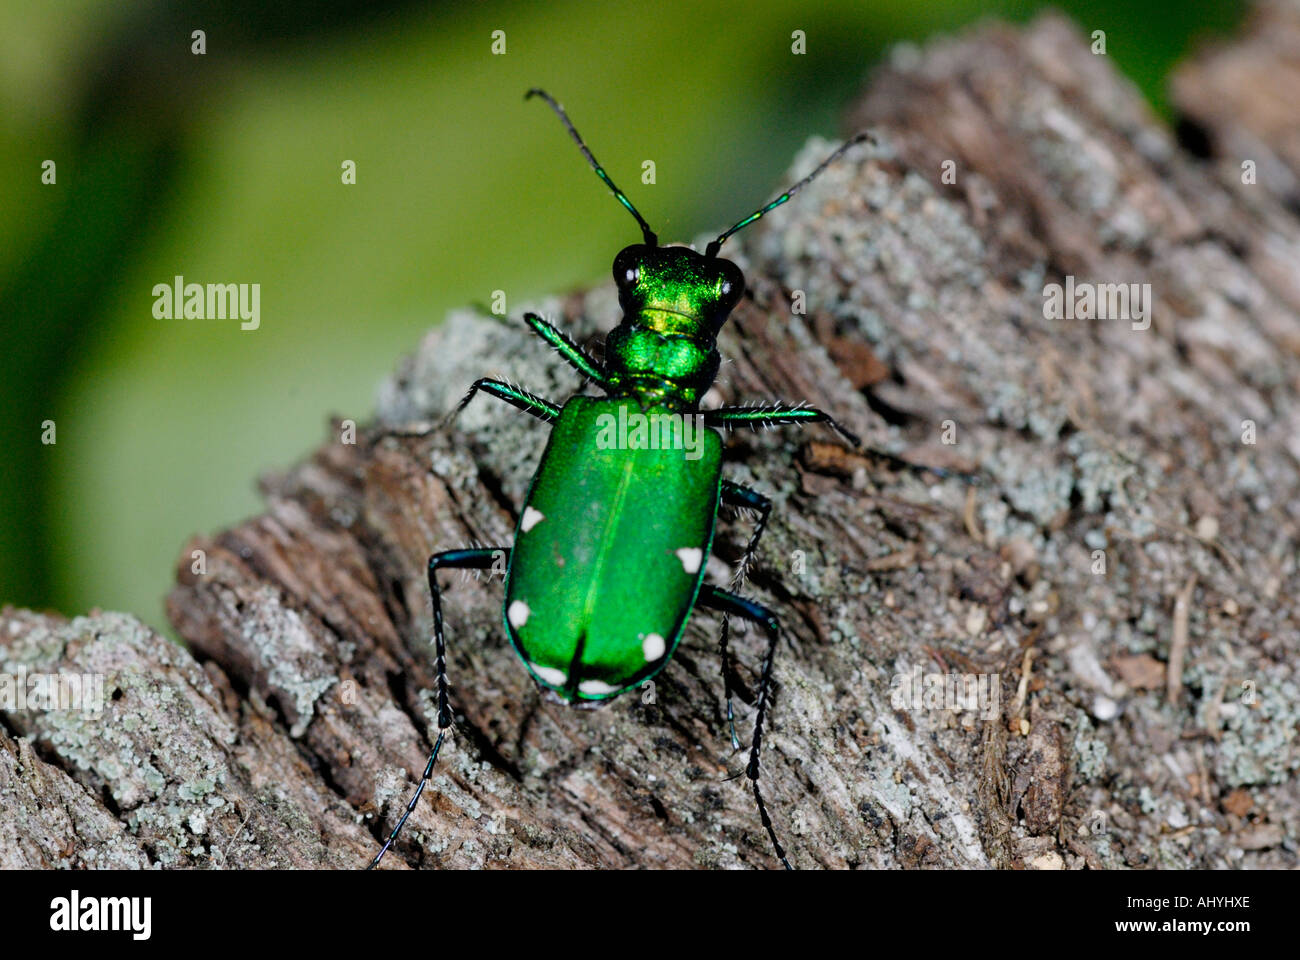 Green 'Tiger Beetle', Cicindela sexguttata, on log - Stock Image